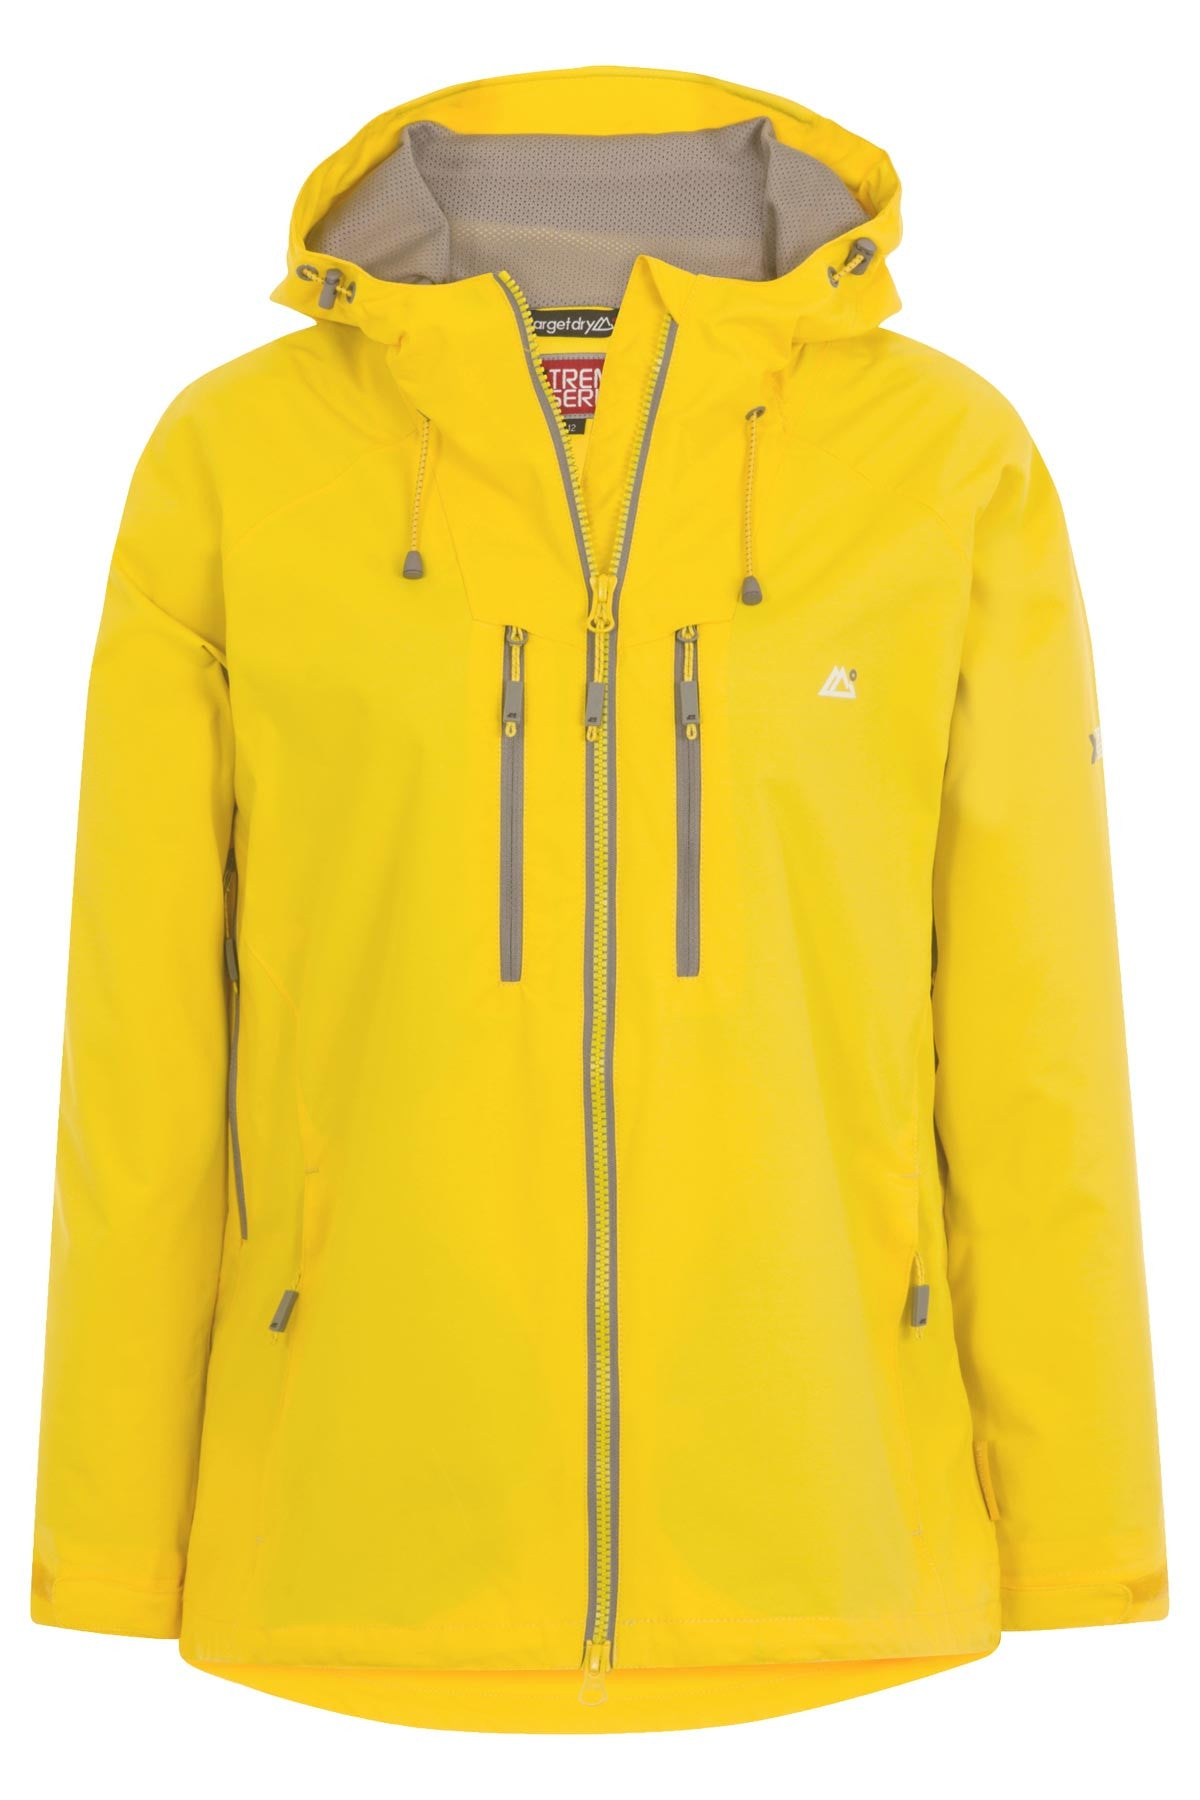 Xtreme Series Solar Womens Waterproof Jacket Yellow ... c60fce46d7